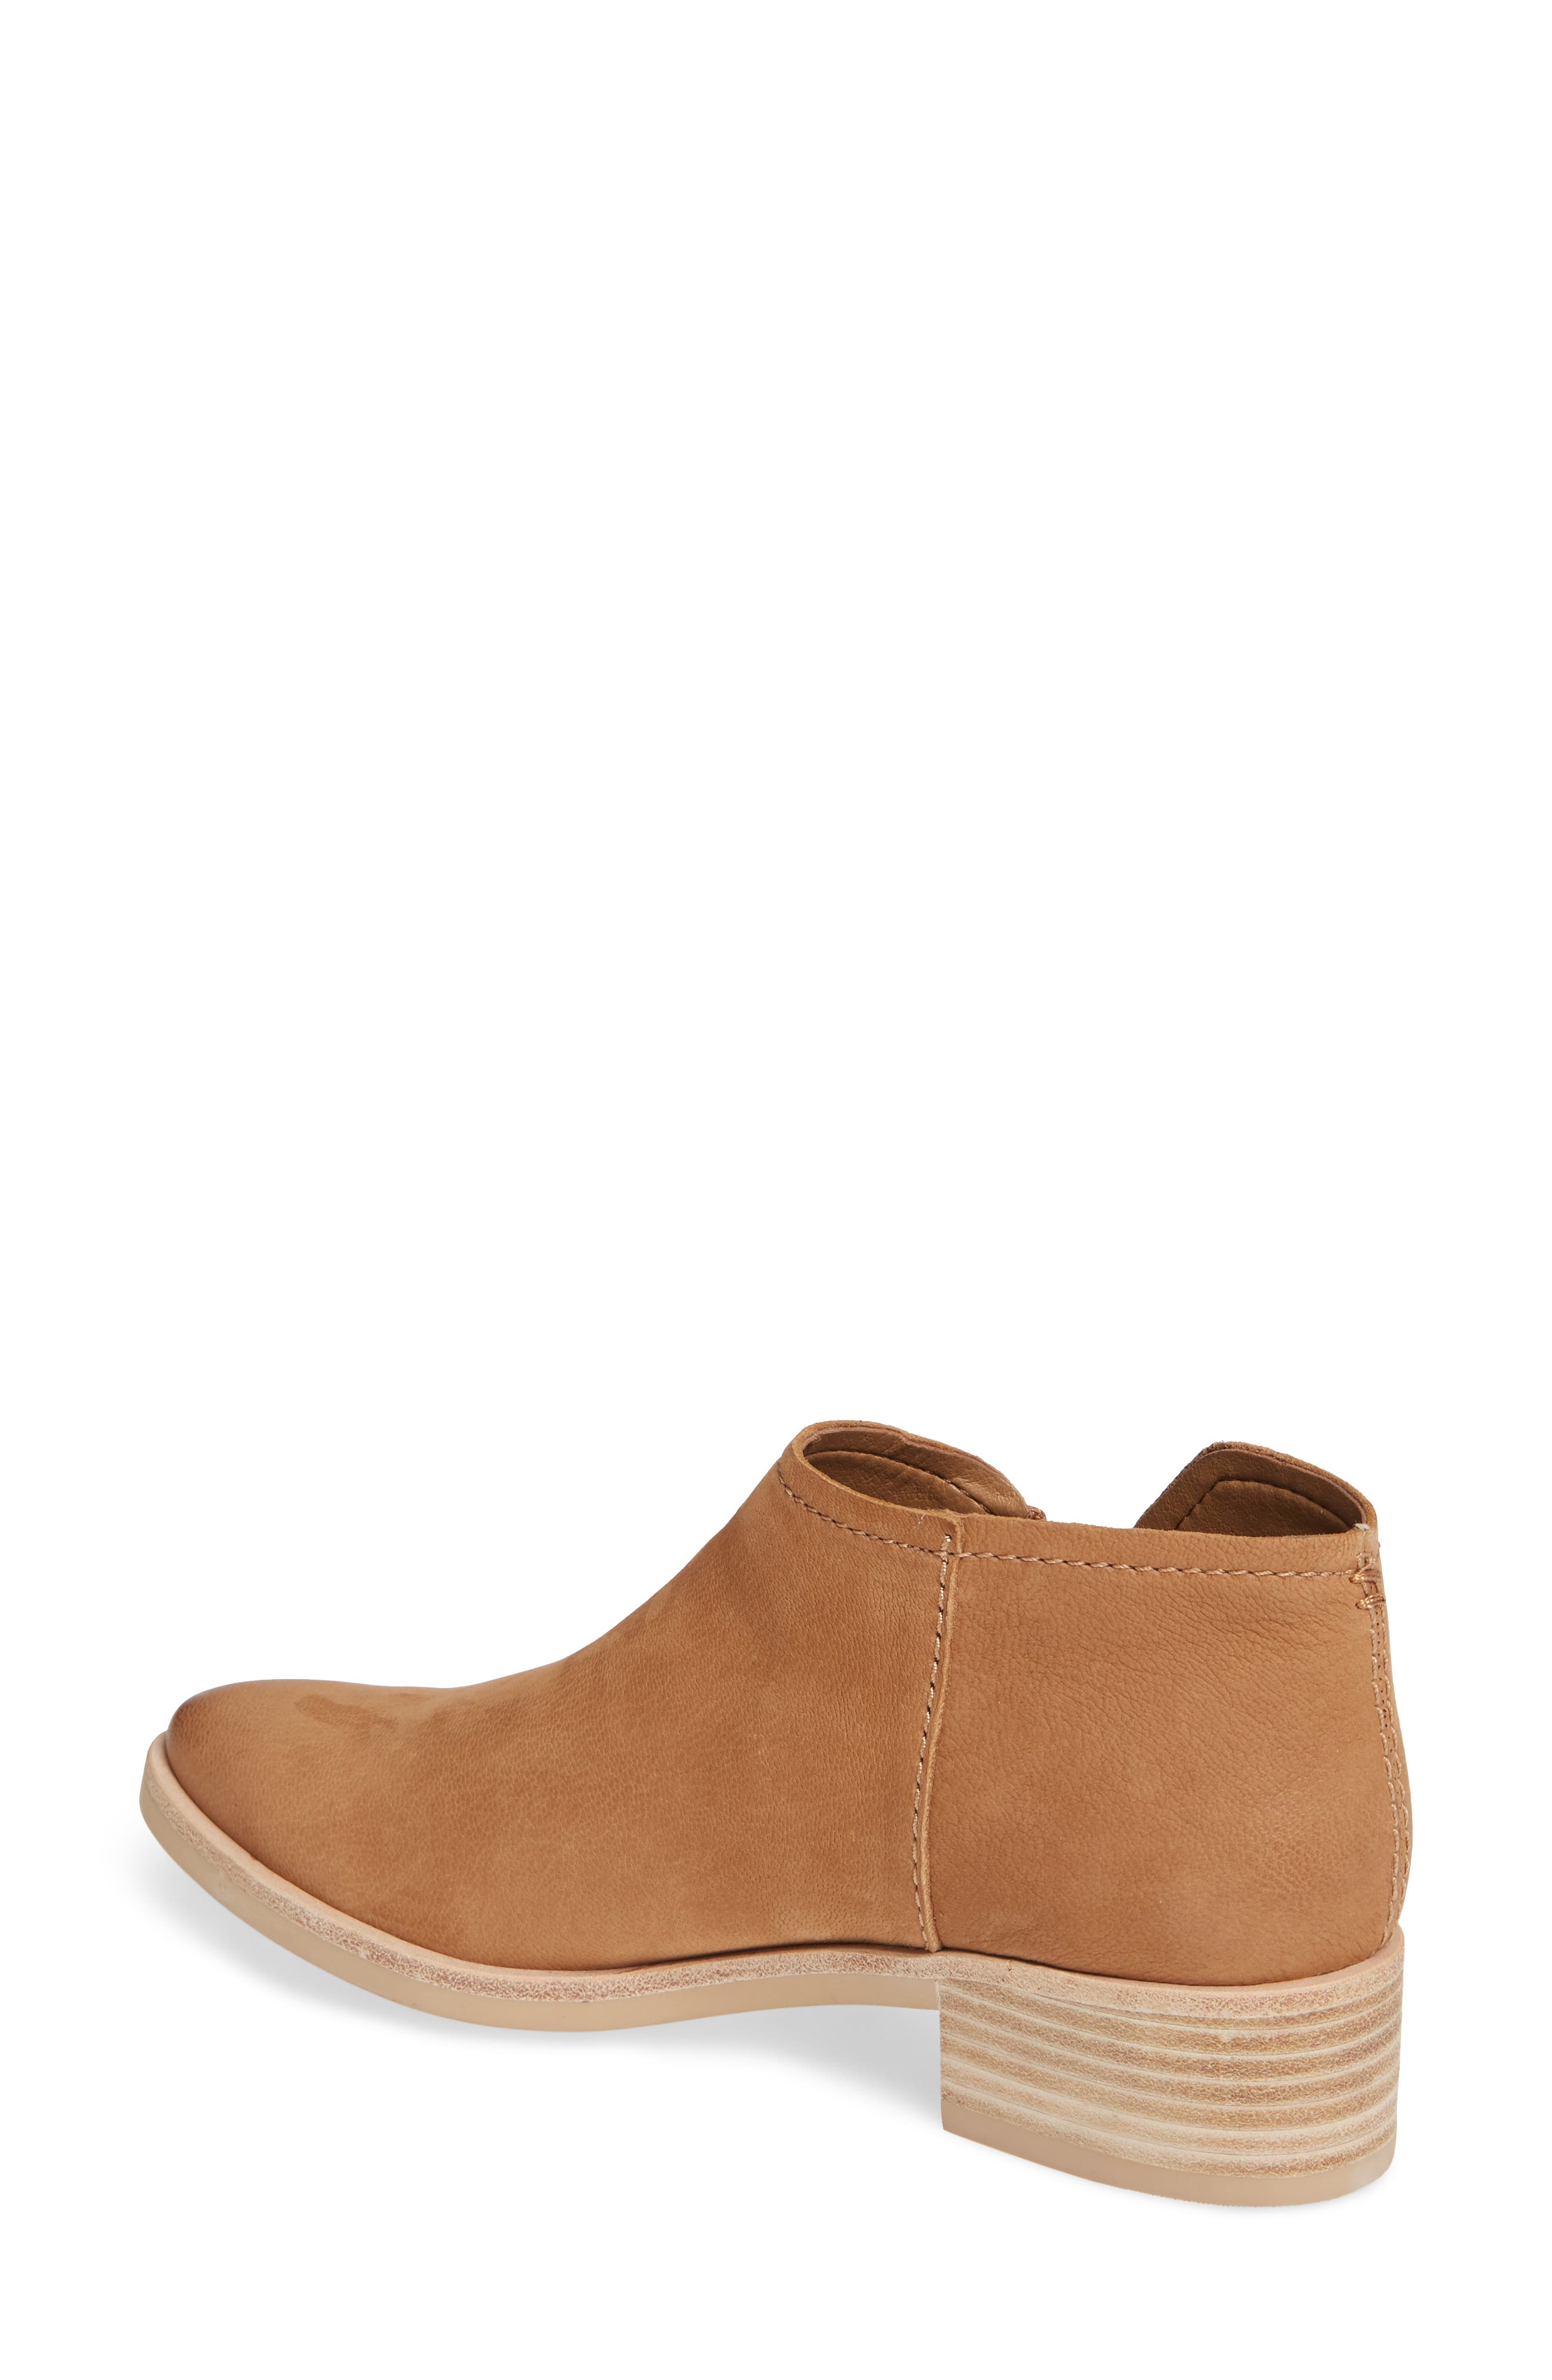 Trent Bootie,                             Alternate thumbnail 2, color,                             TAUPE